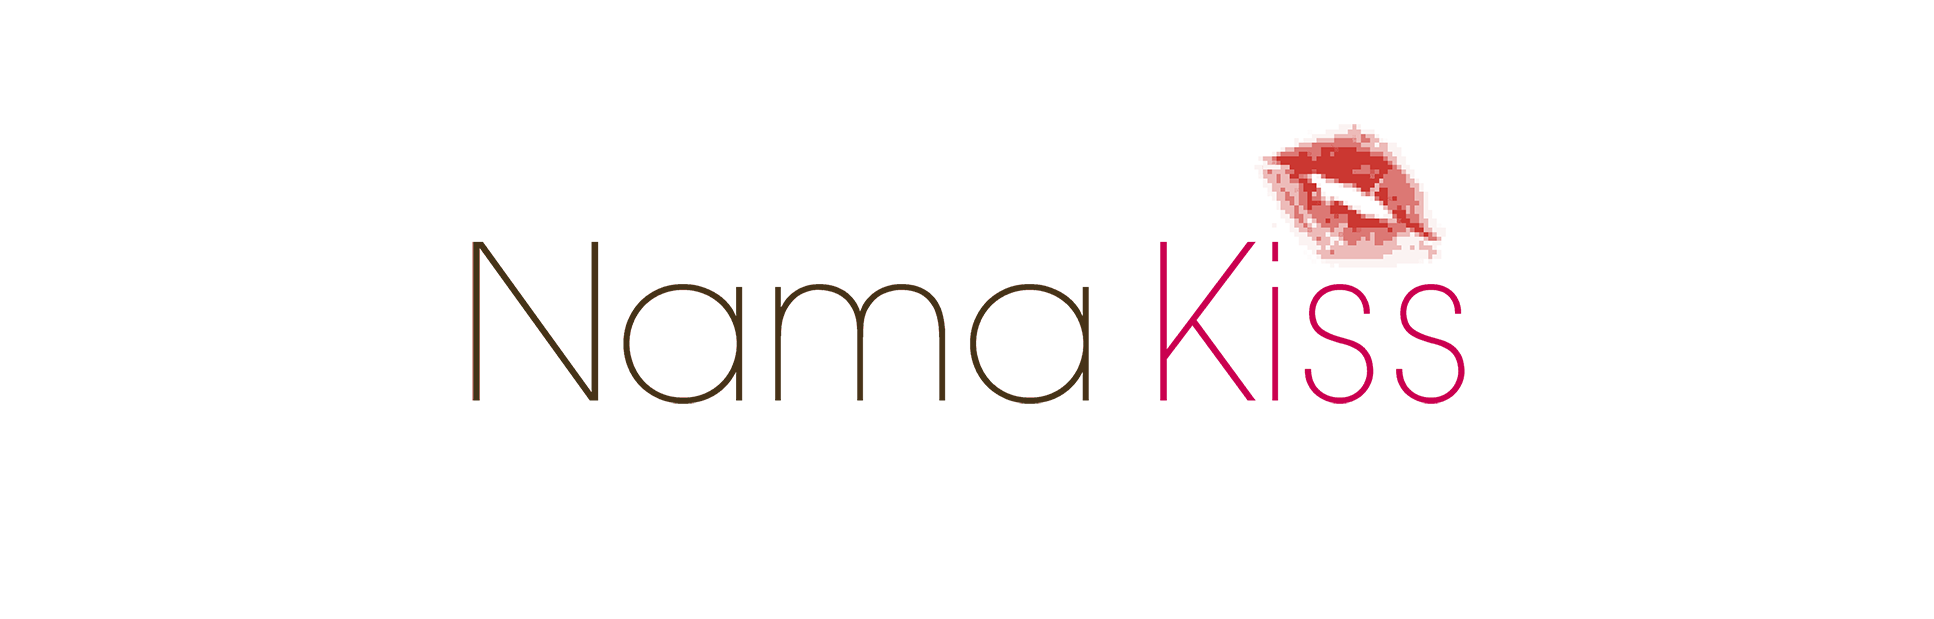 NamaKiss logo with a small kiss mark above the title